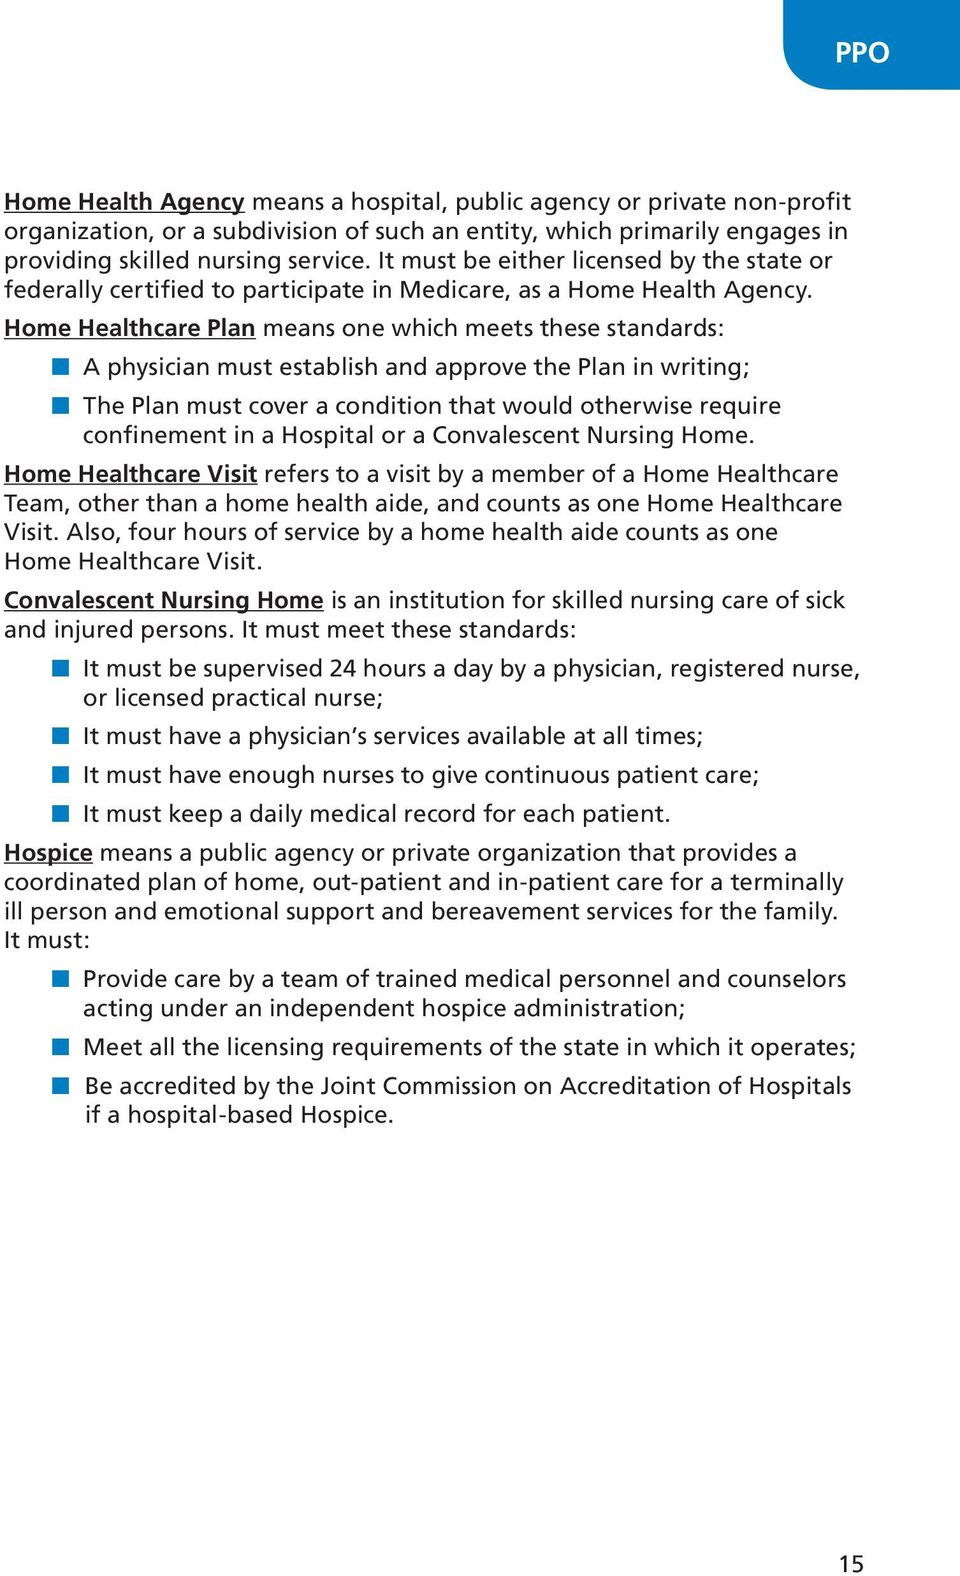 Home Healthcare Plan means one which meets these standards: n A physician must establish and approve the Plan in writing; n The Plan must cover a condition that would otherwise require confinement in